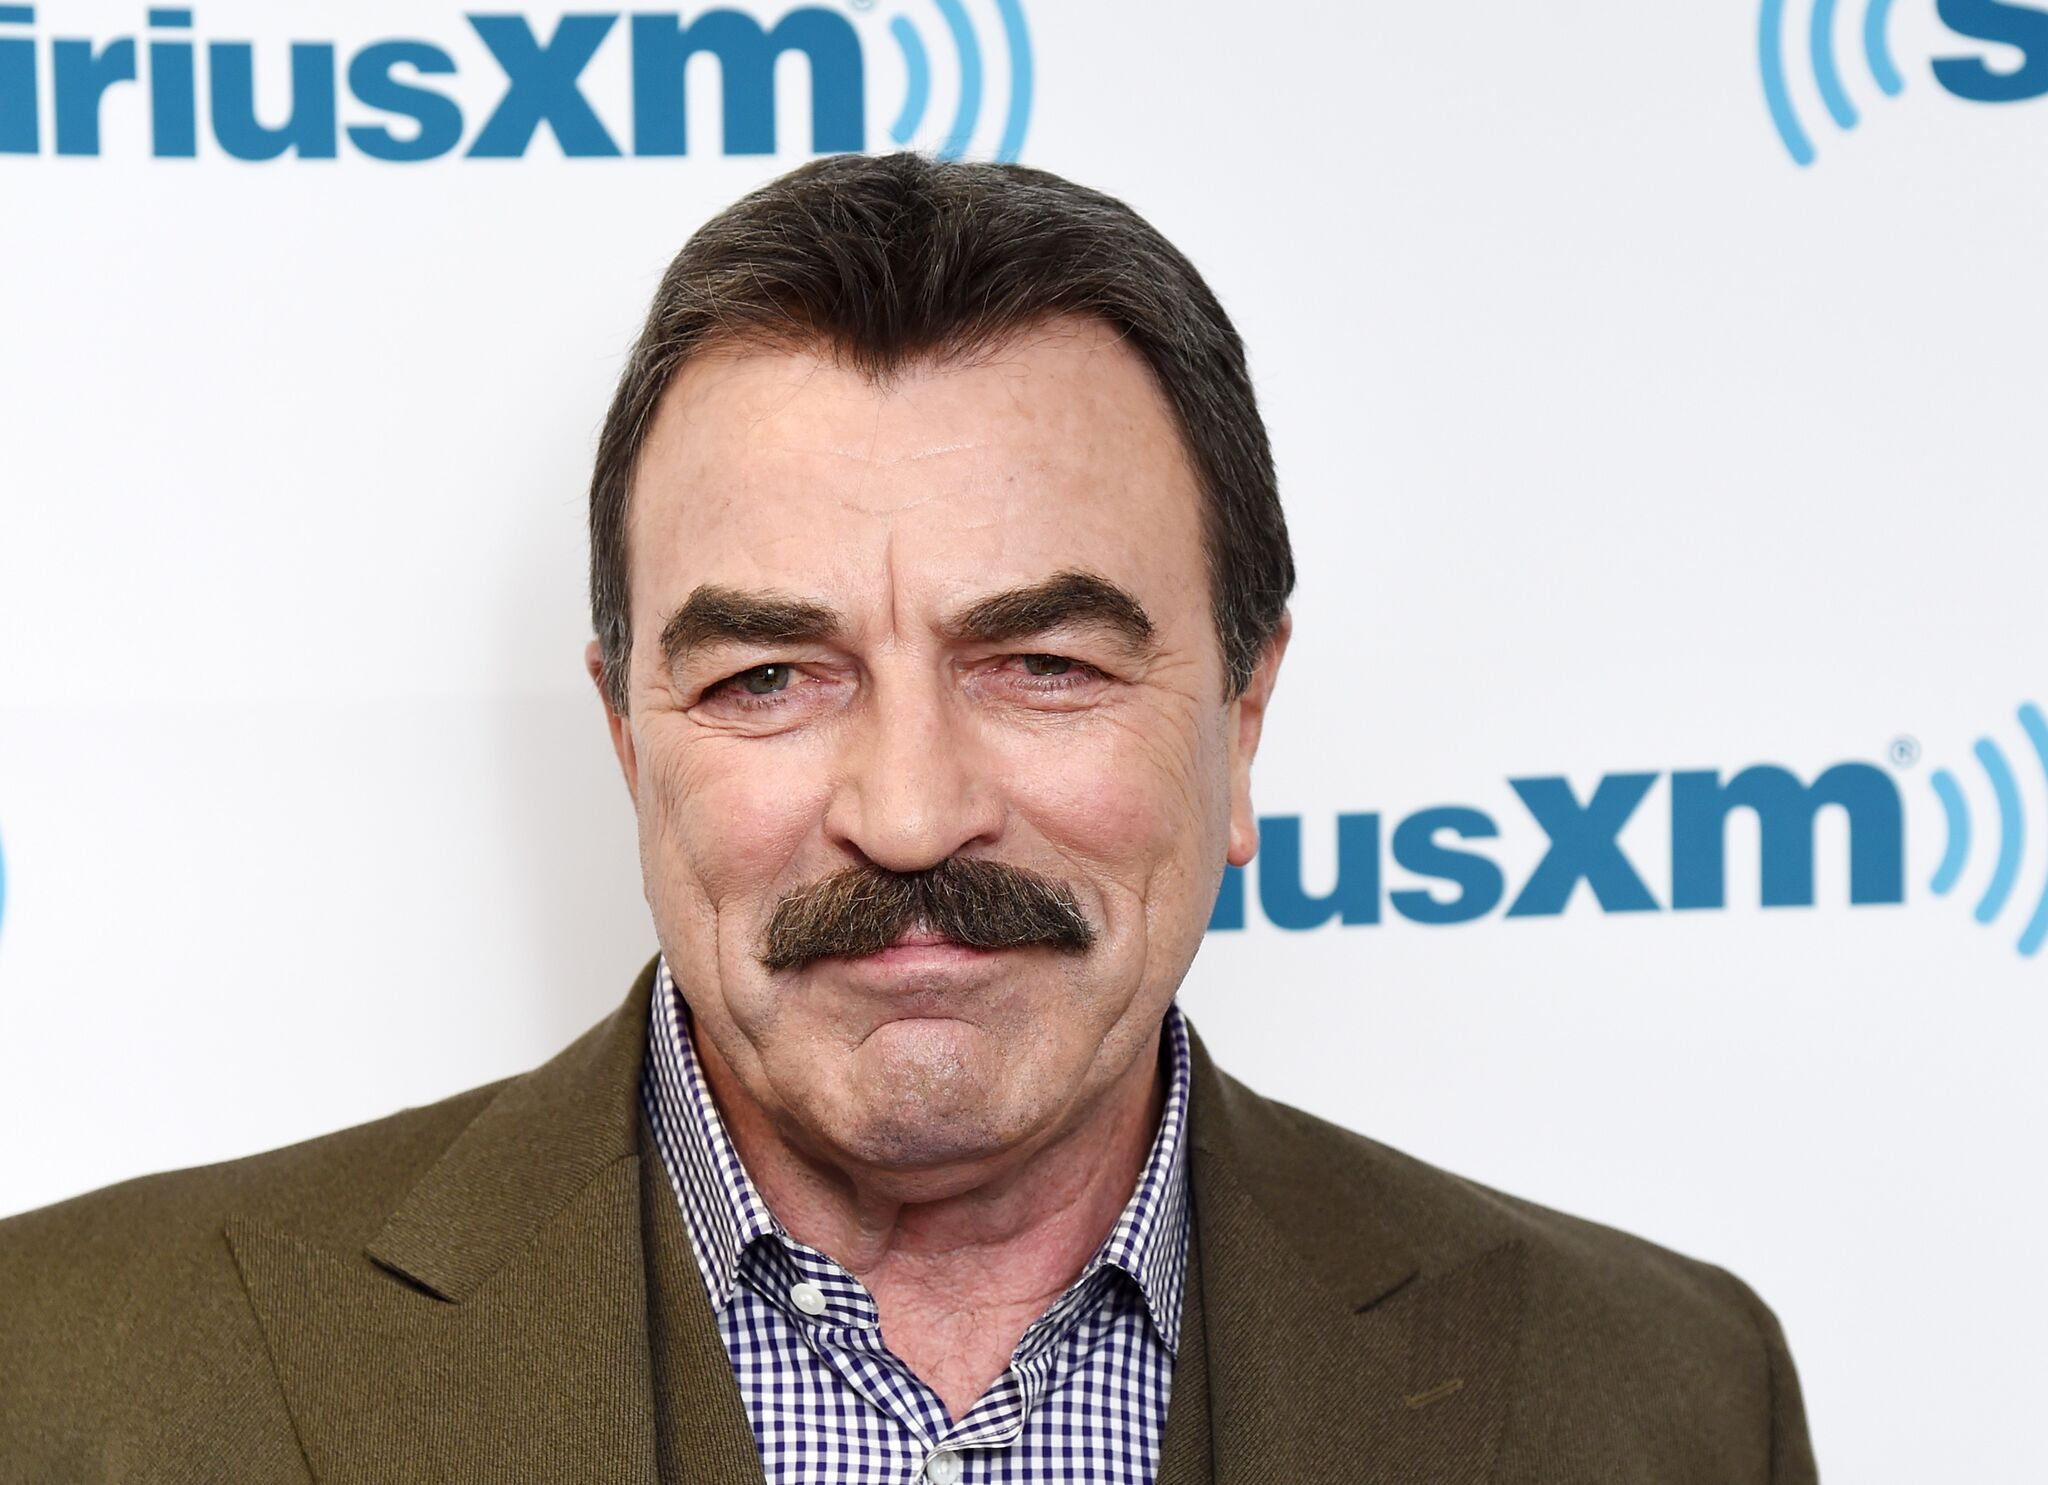 Tom Selleck visits the SiriusXM Studios on October 15, 2015 in New York City | Photo: Getty Images